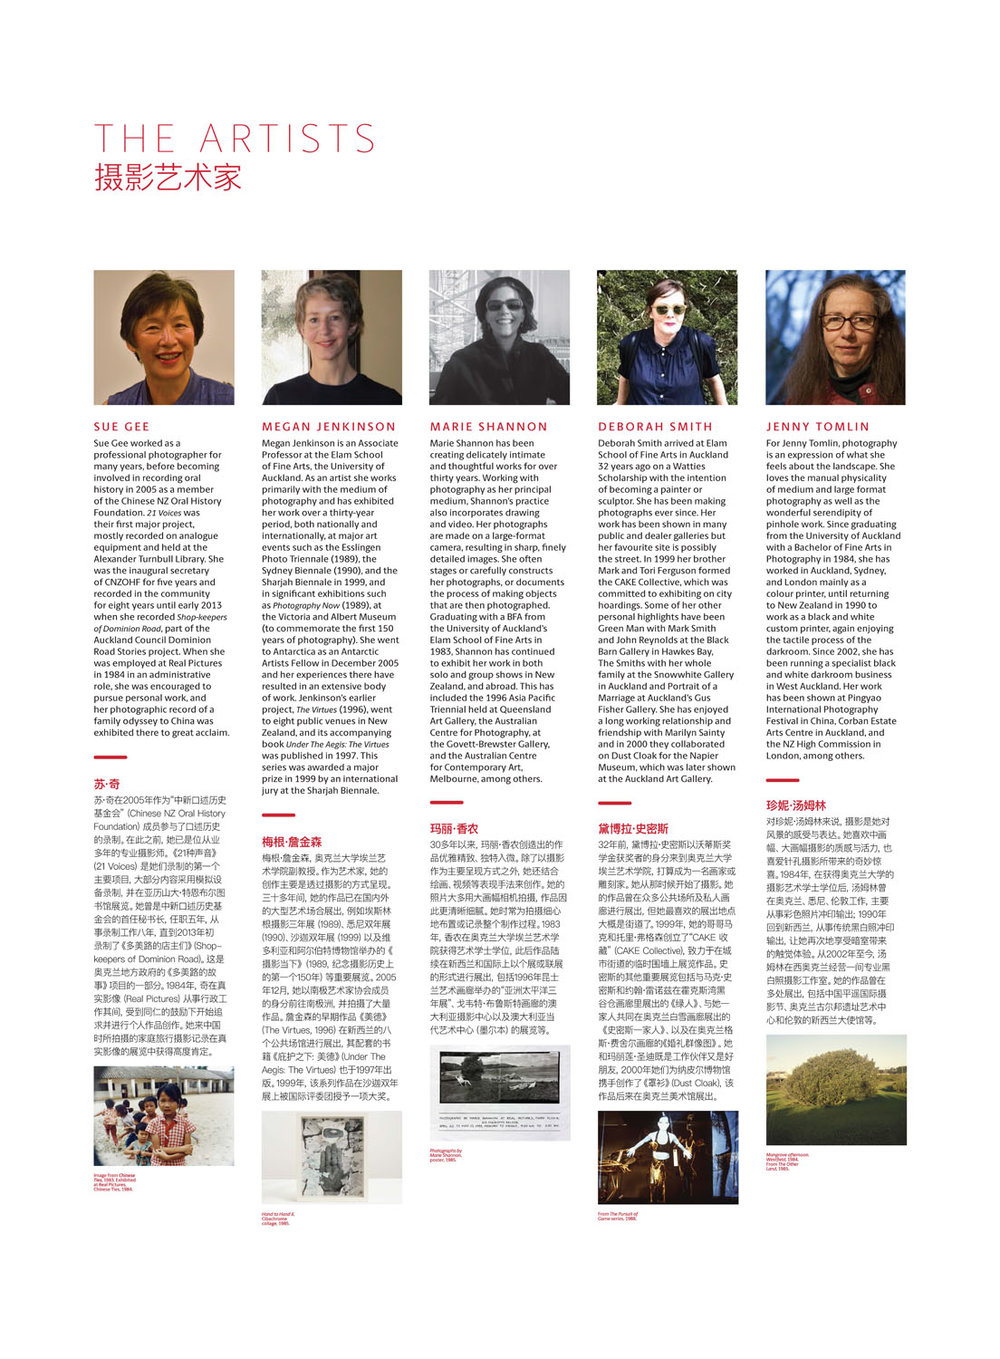 Artist profiles for the Pingyao version of  Real Pictures: Imaging XX.  Design by Fiona Lascelles